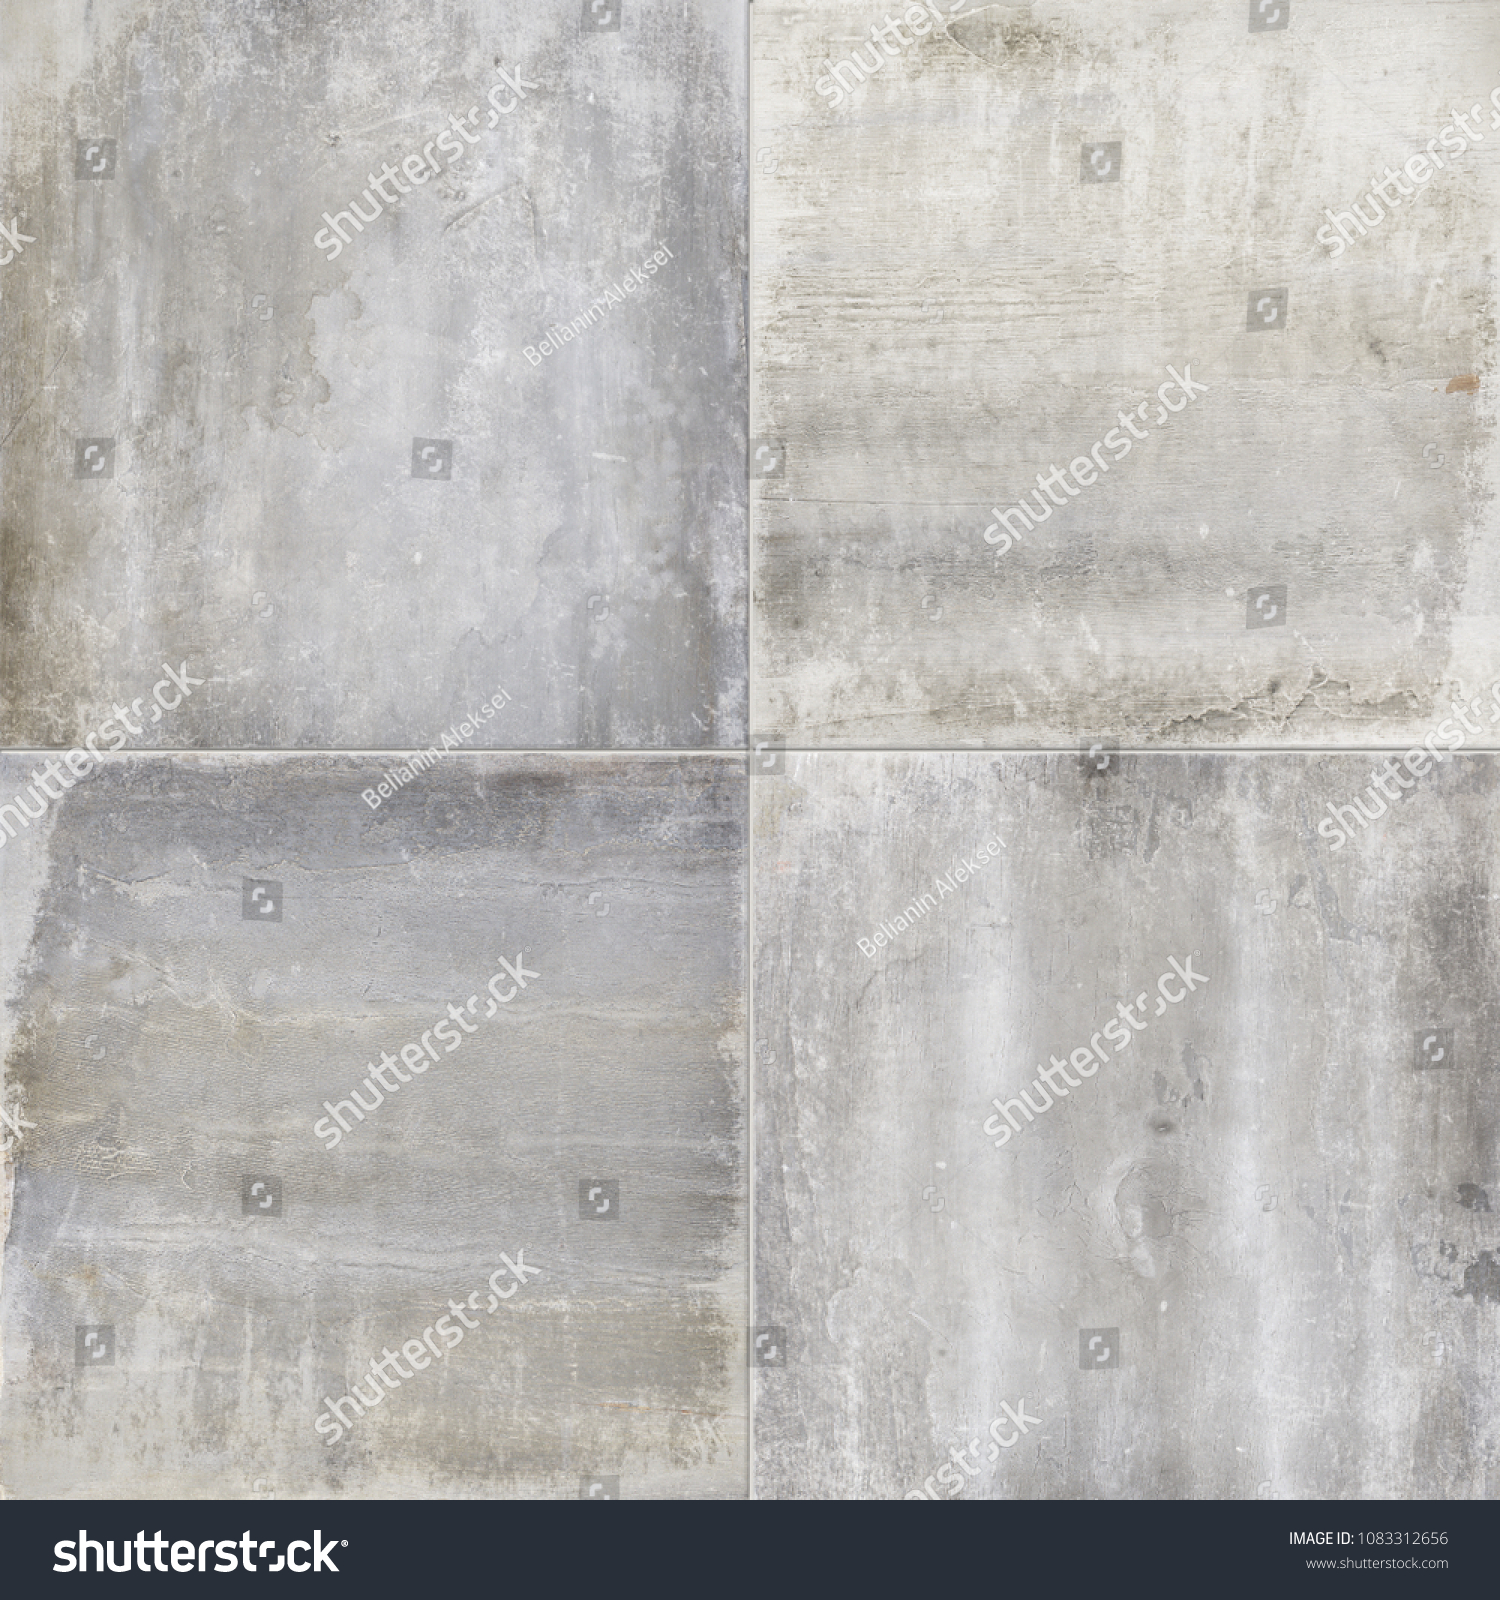 Background For Wall Tiles, Texture, Design, Backdrop